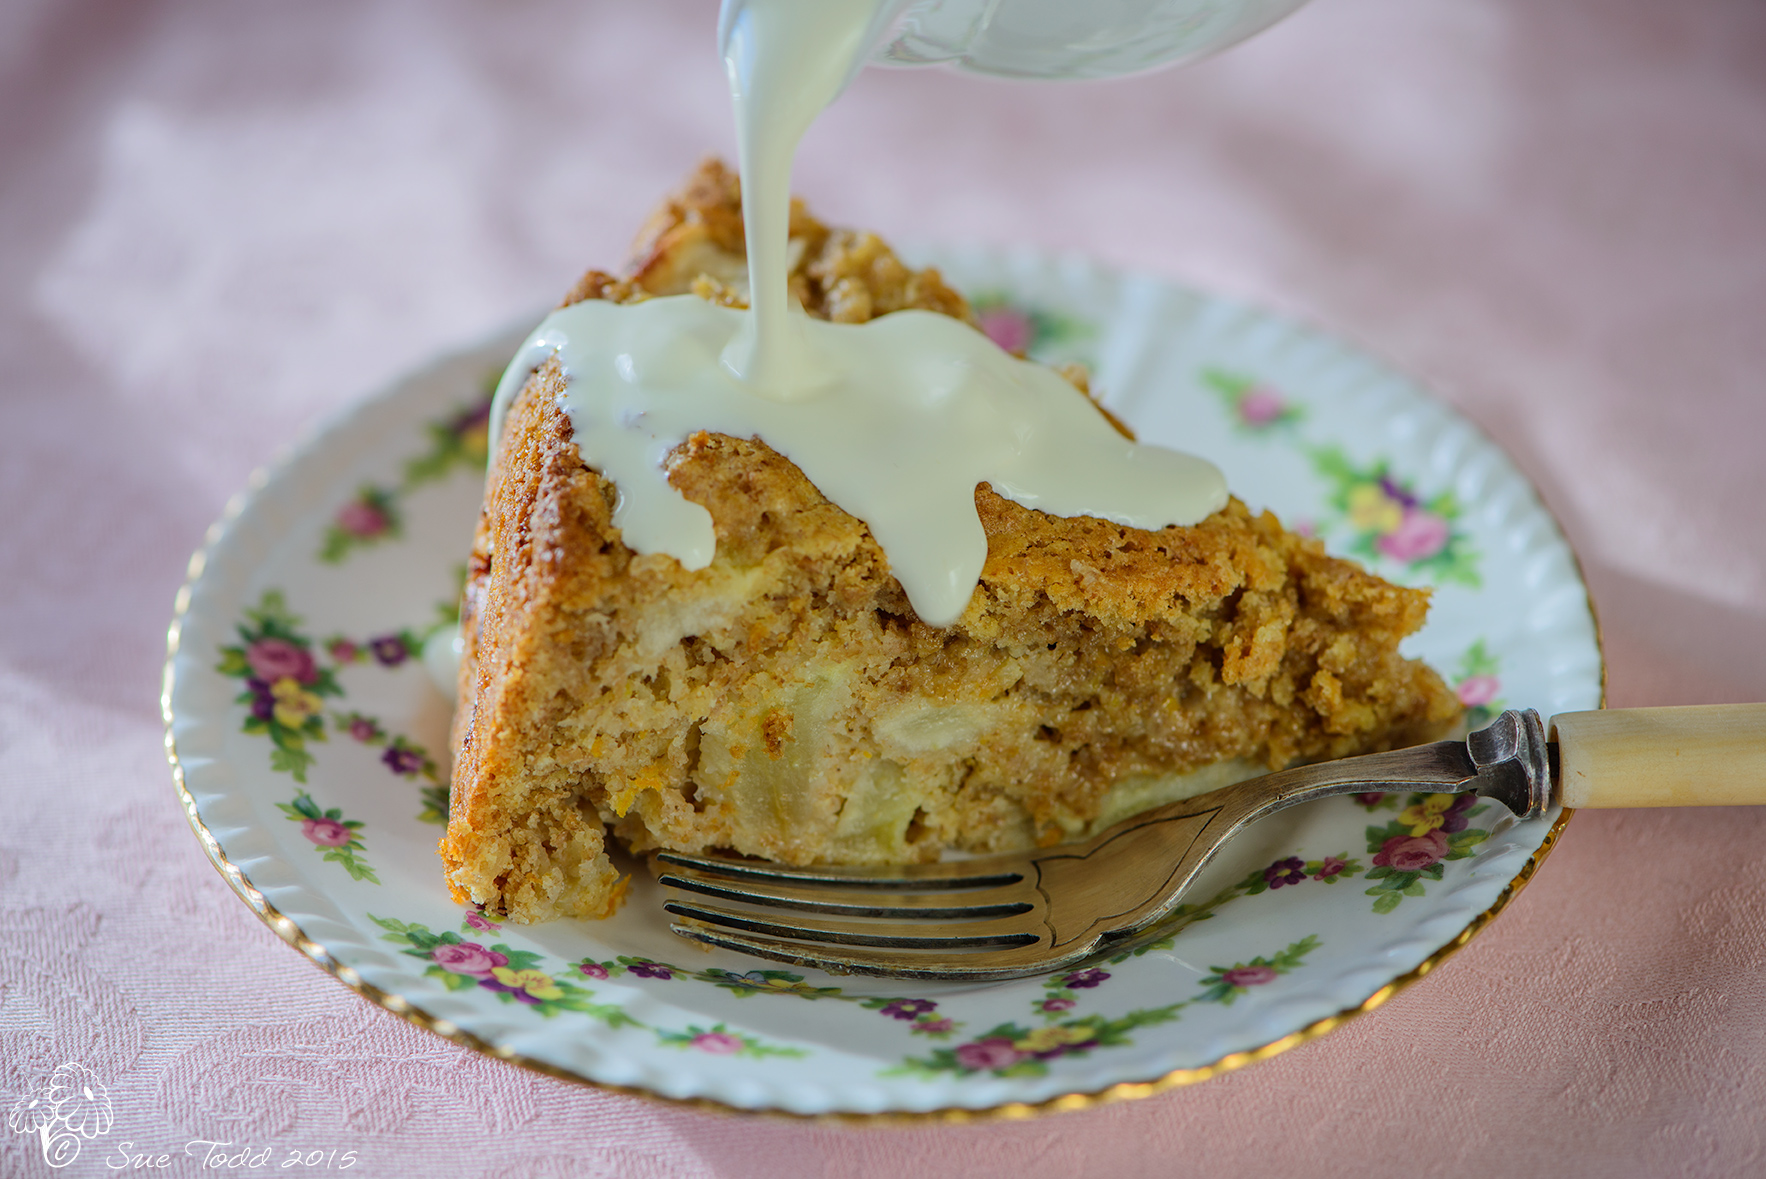 Cream Cake Recipe In English: English Country Cooking